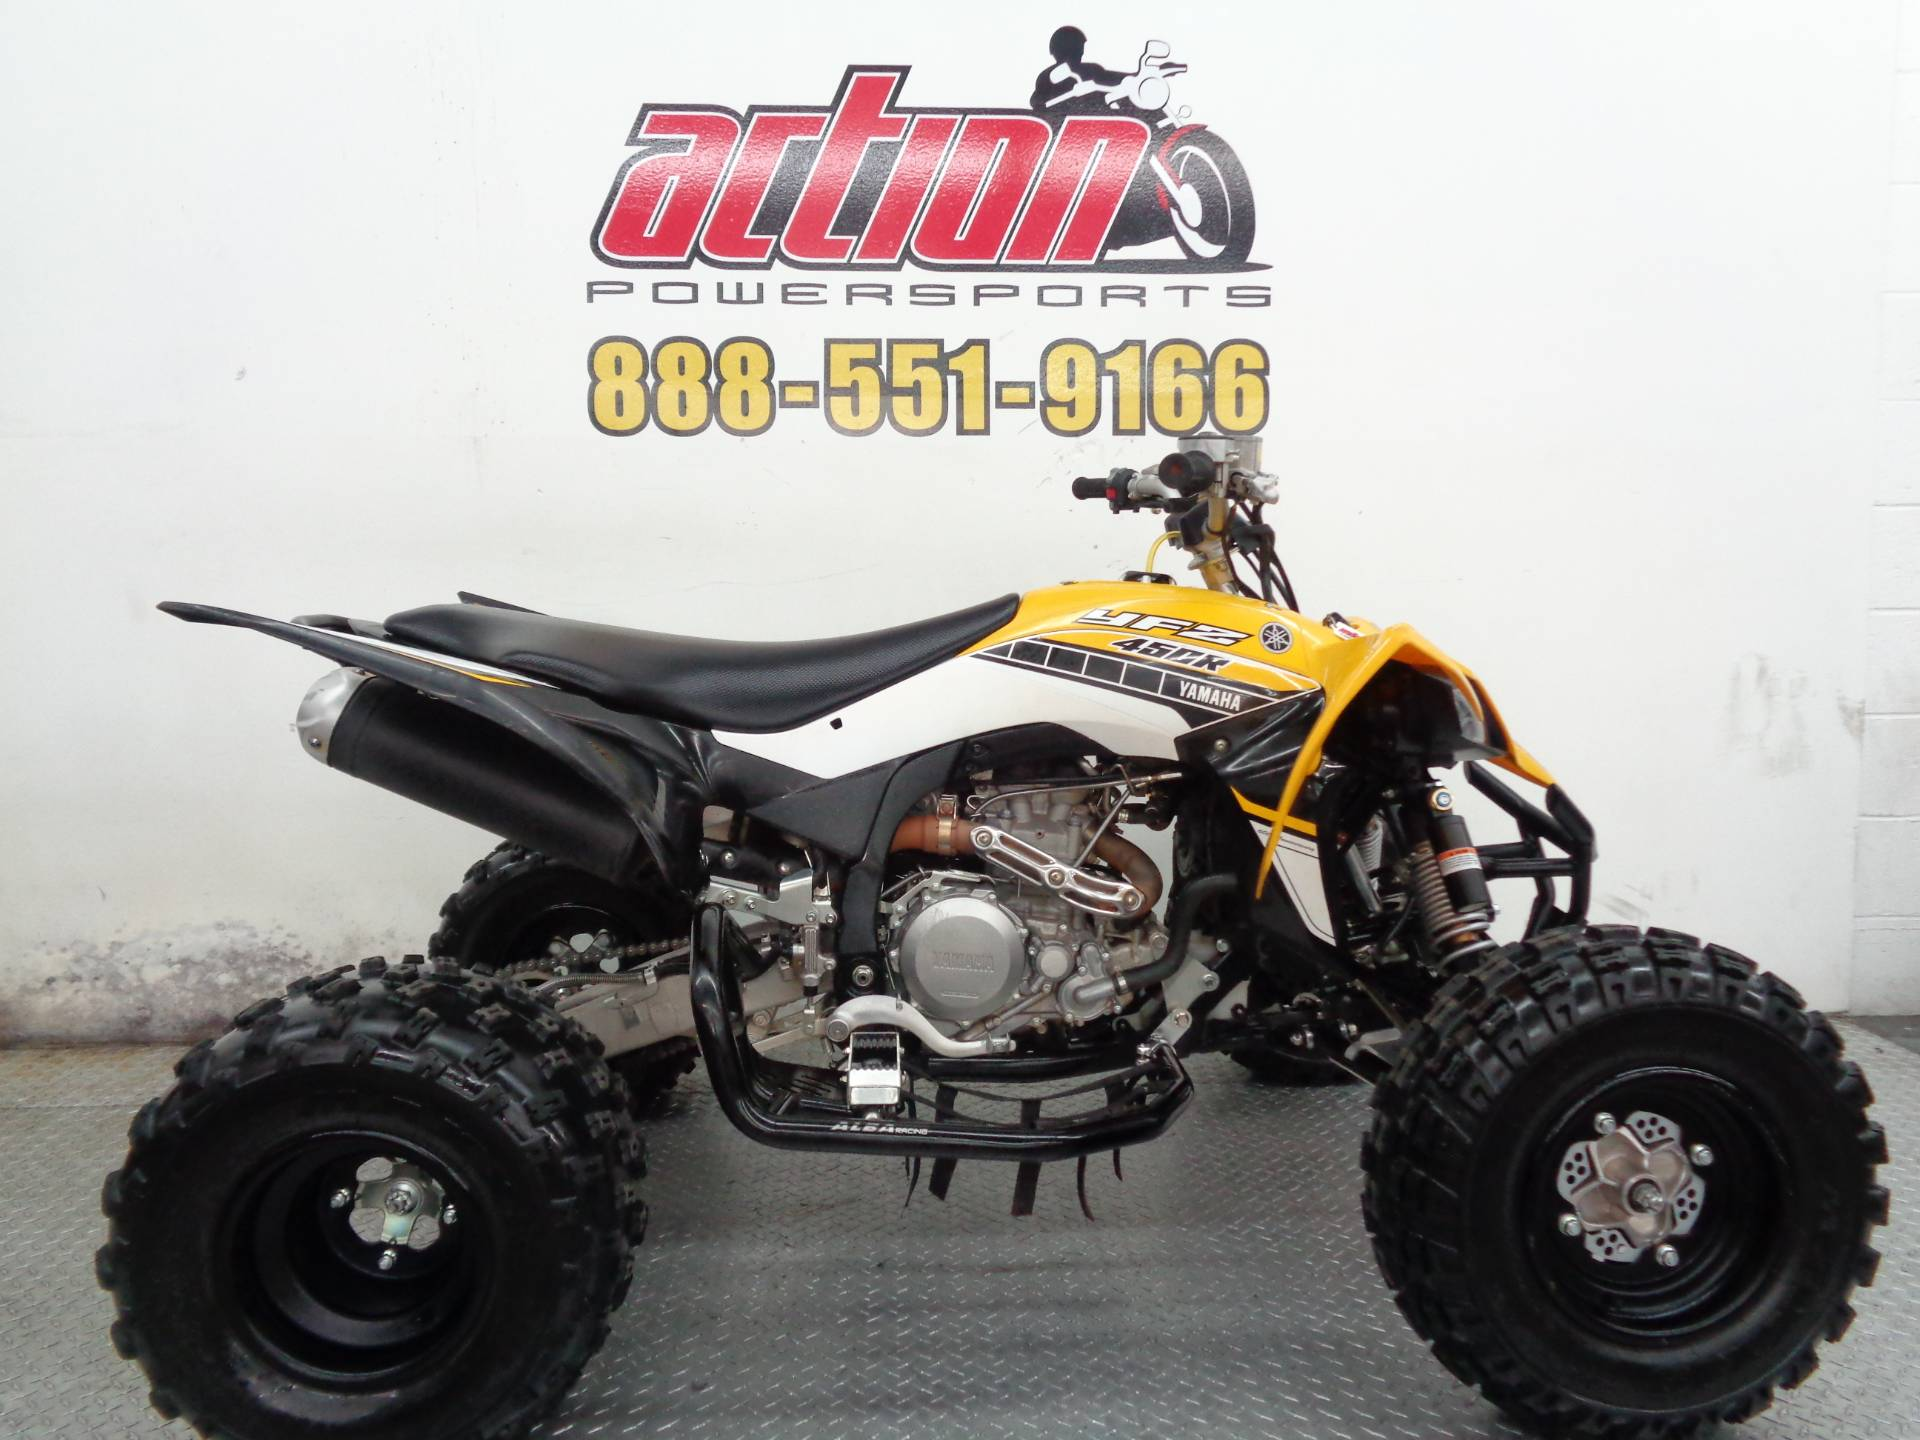 2016 Yamaha YFZ450R SE for sale 68869